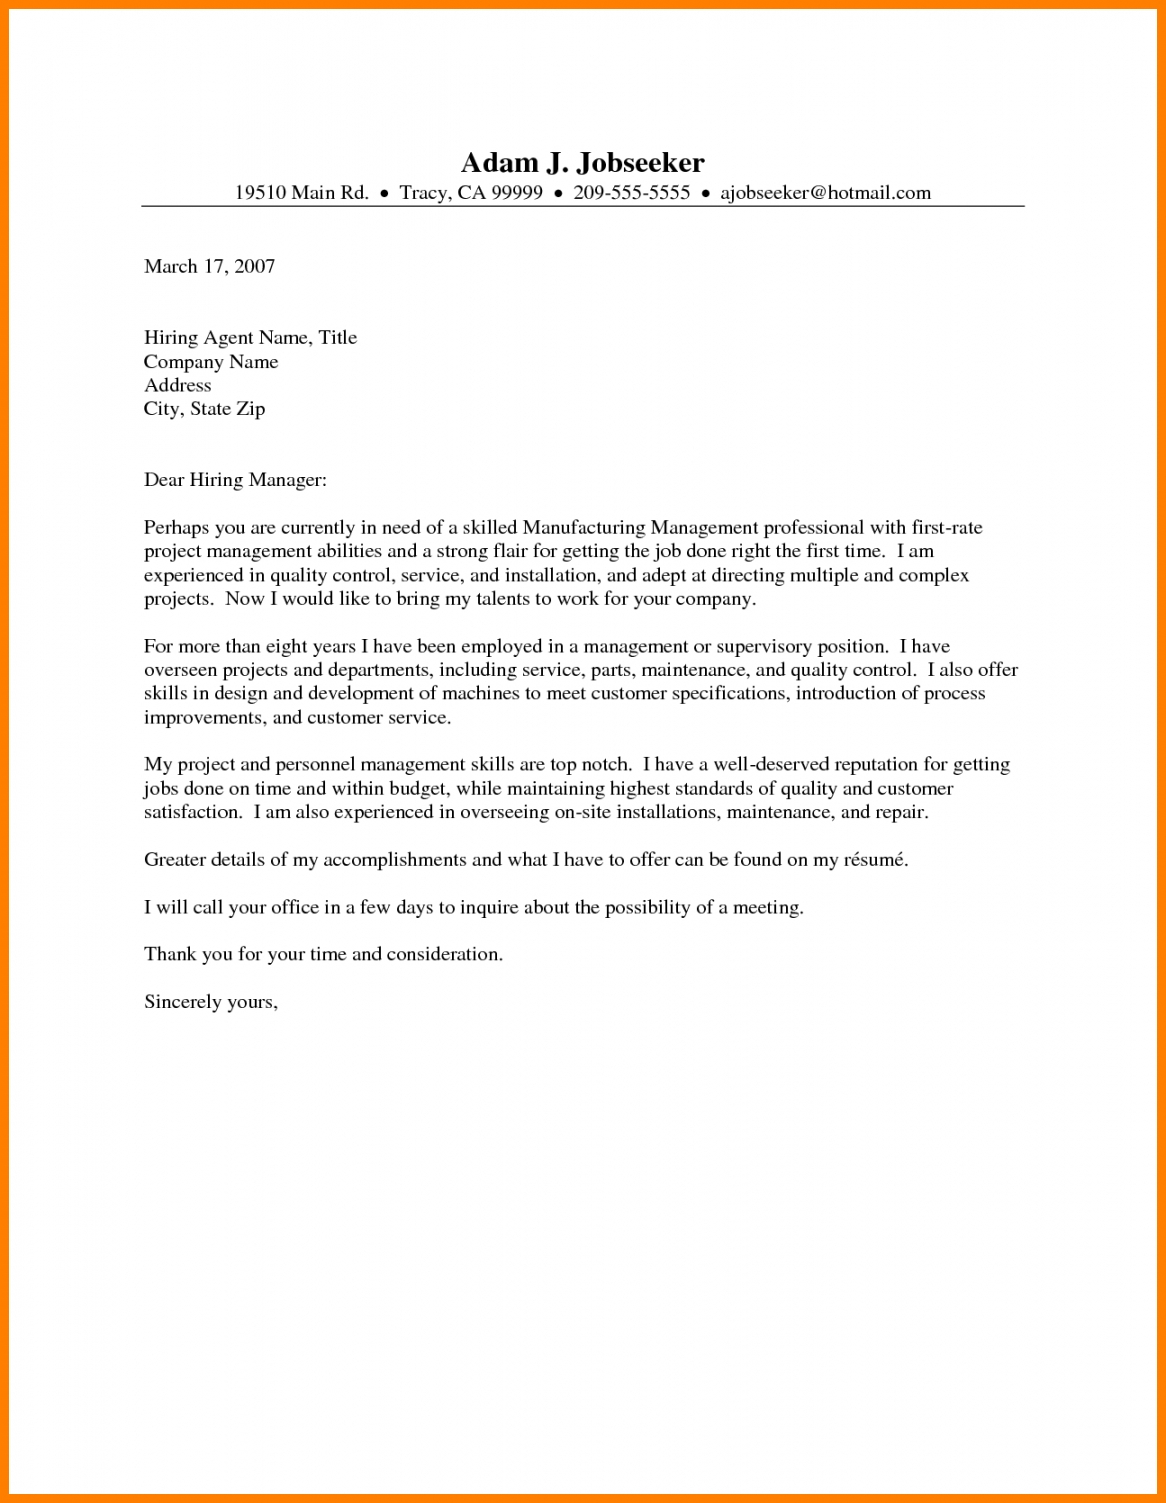 Medical Scribe Cover Letter Template - Cover Letter for Resume for Medical assistant Cover Letters for